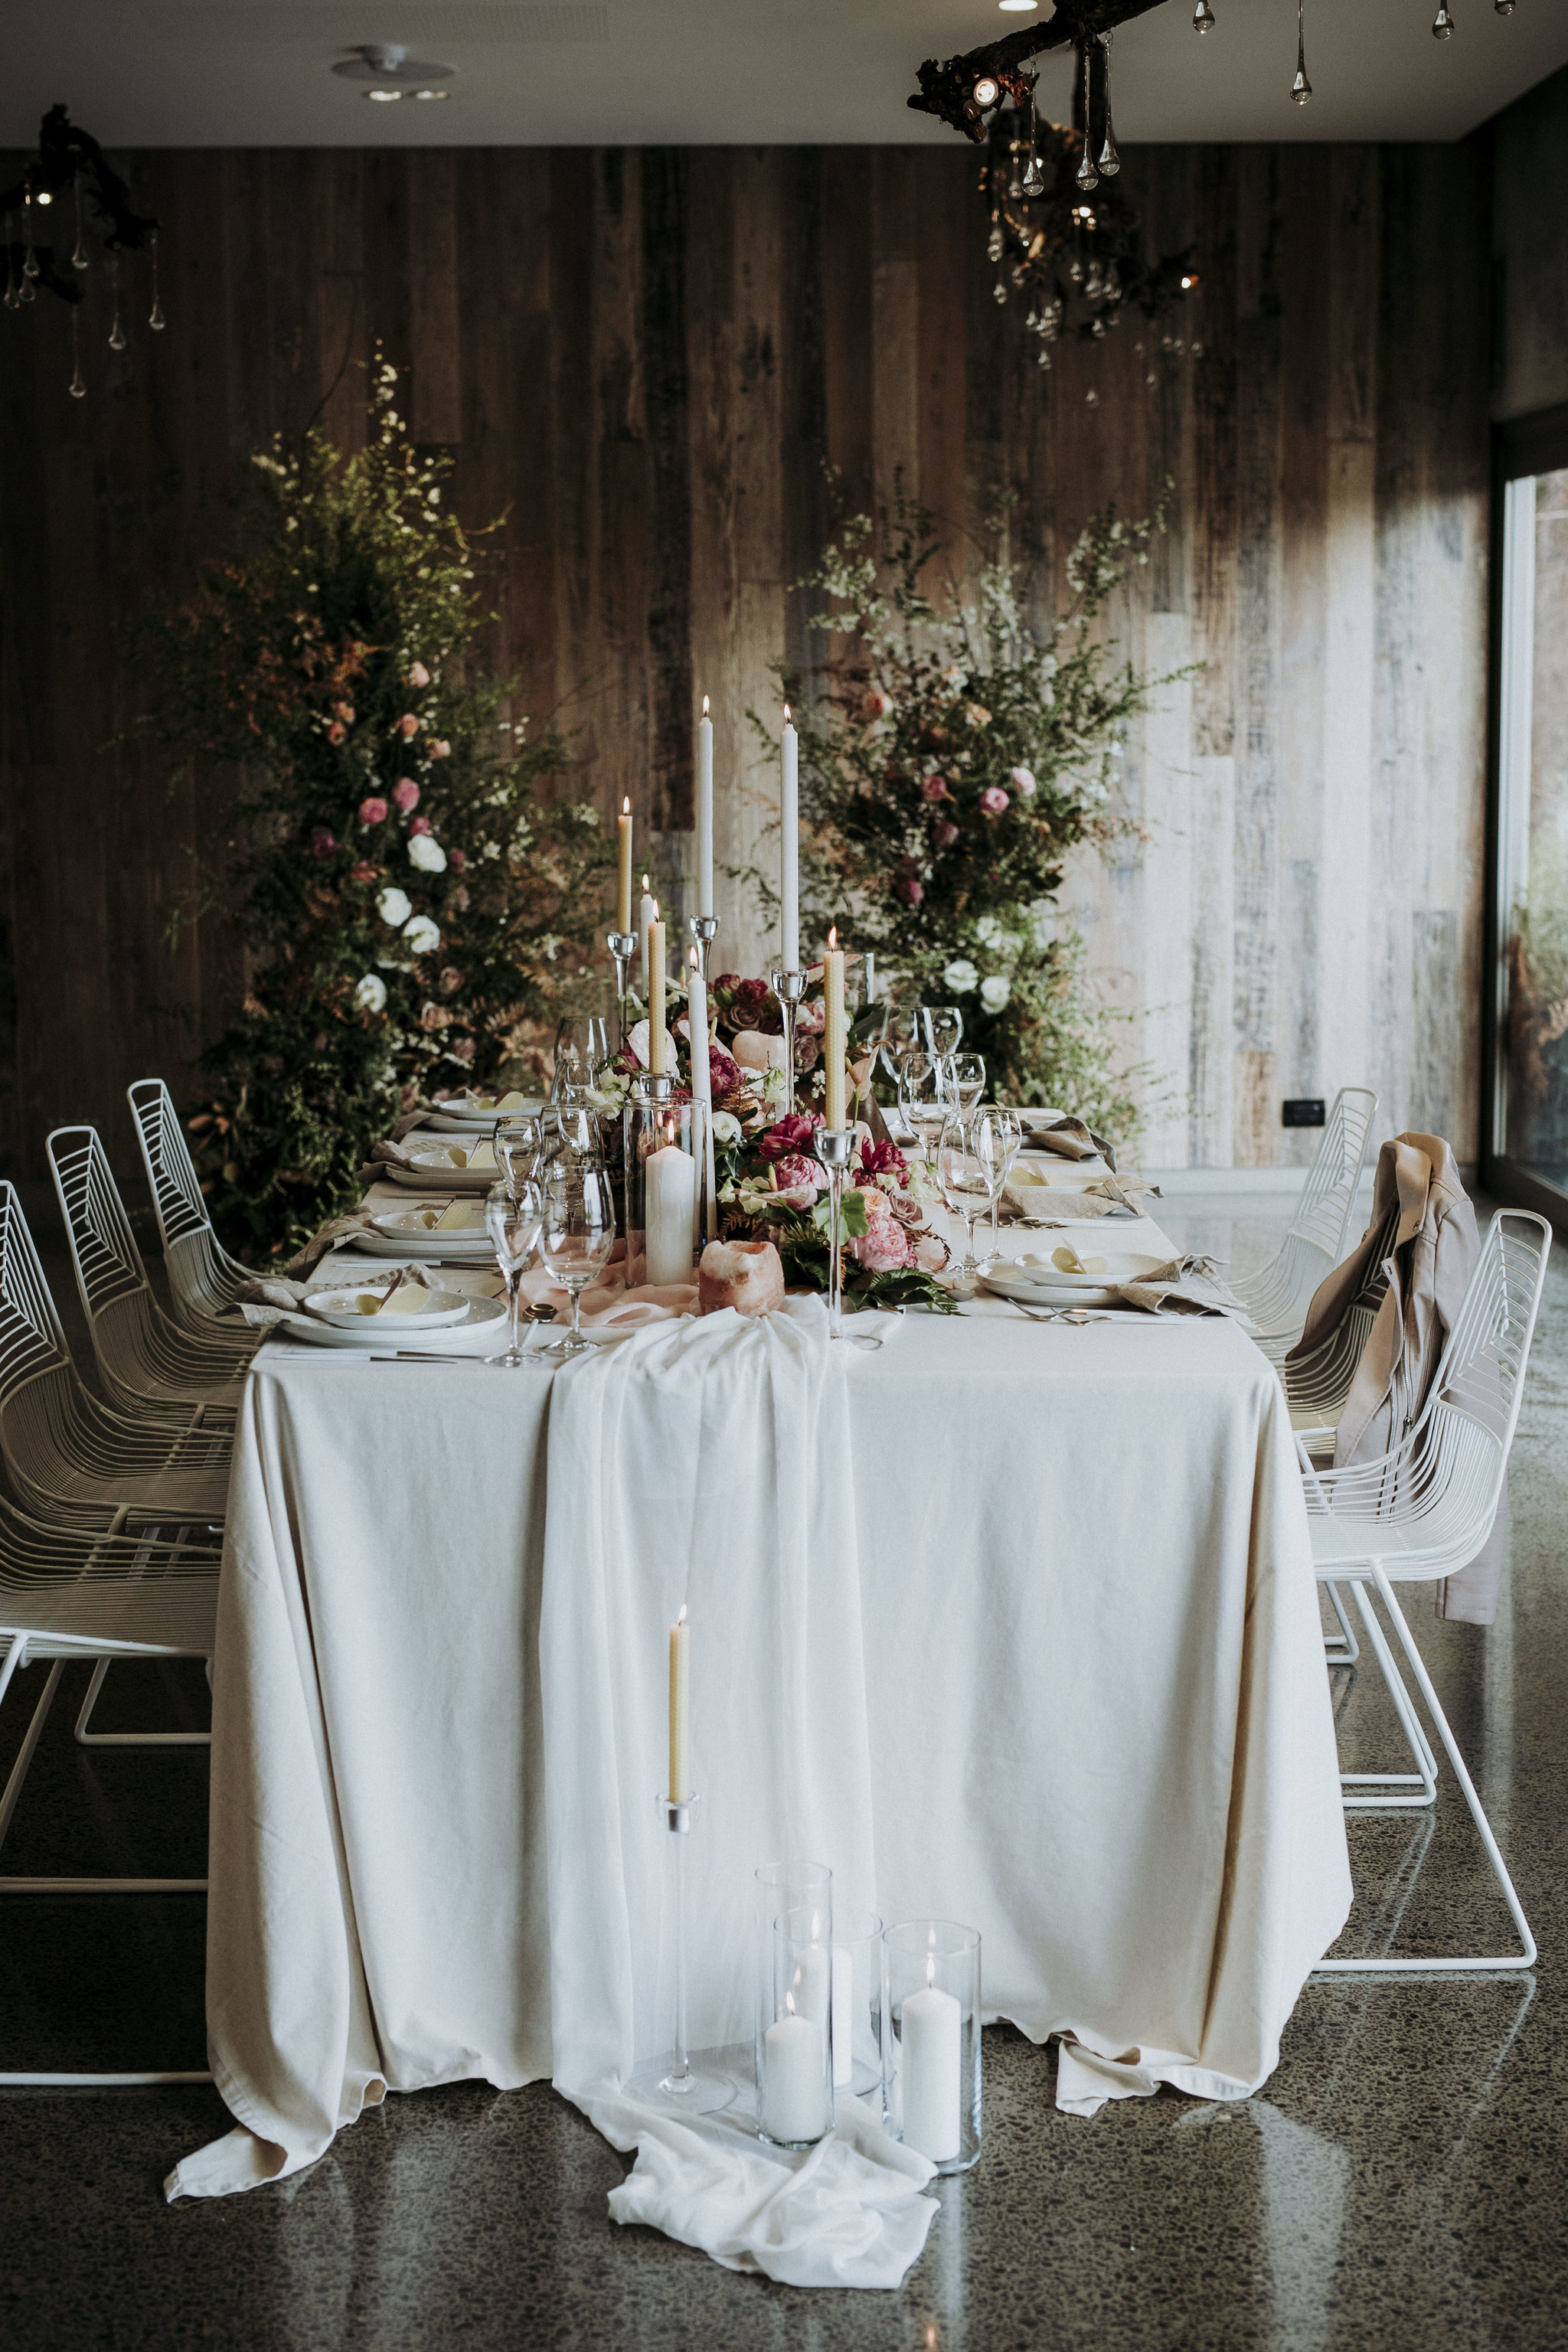 Shoot table flowers 1.jpg